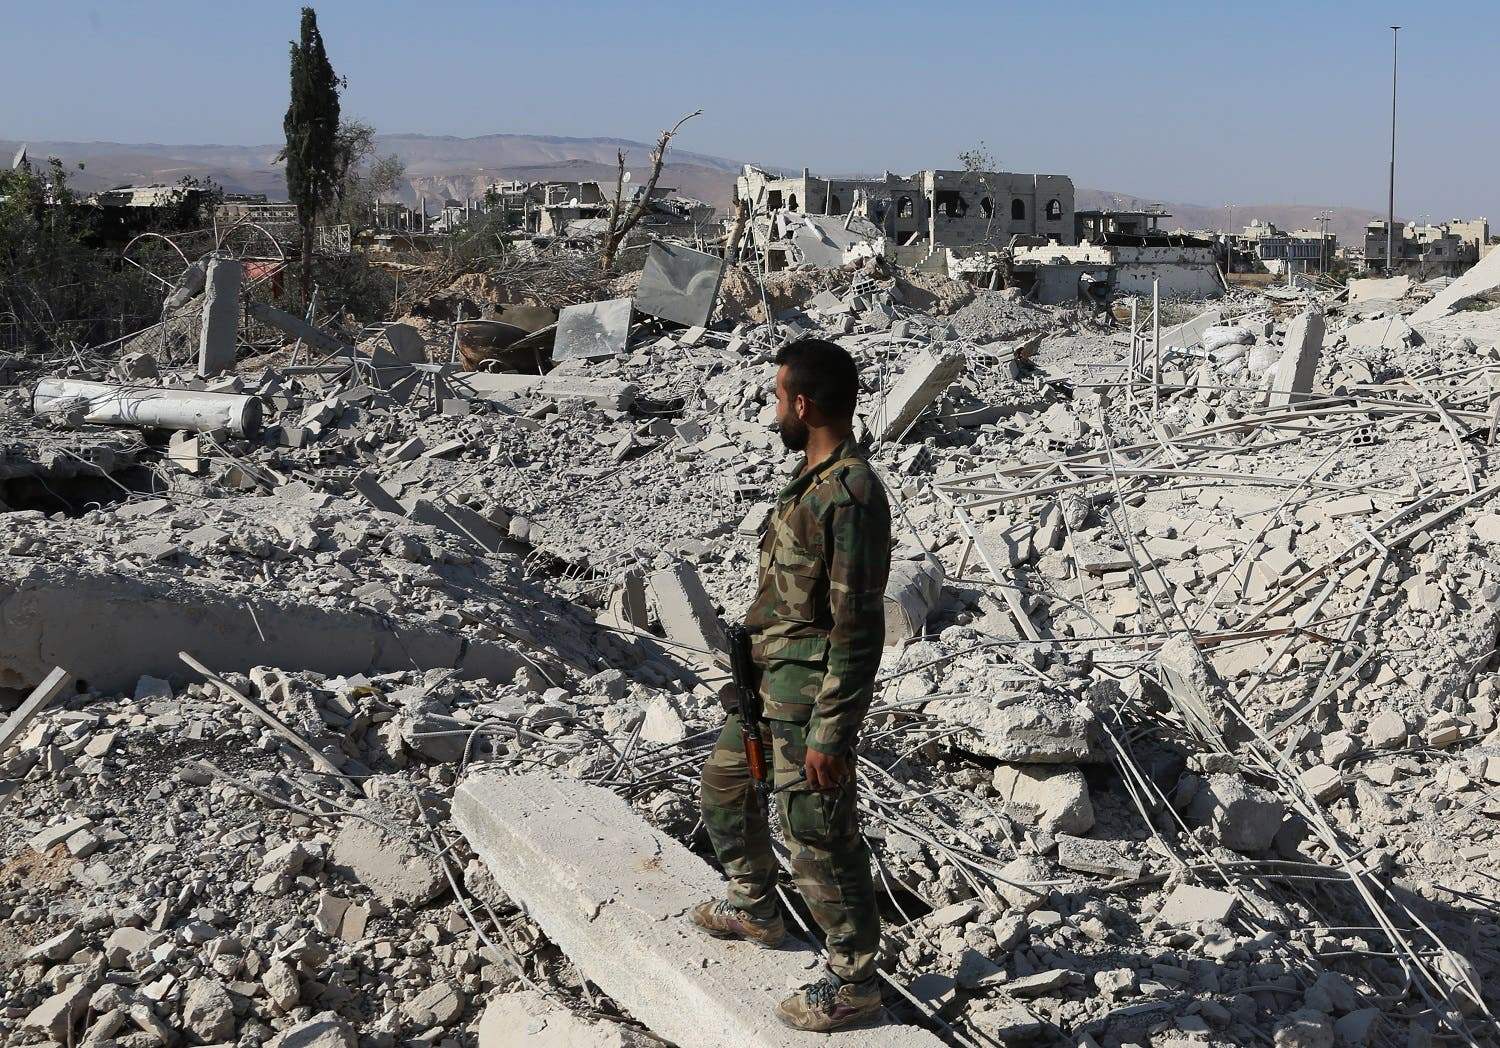 A member of the Syrian pro-government forces stands on the rubble of destroyed buildings as troops advance through Qabun district, on the outskirts of the capital Damascus, on May 13, 2017, during an offensive to retake the area from opposition fighters. (AFP)